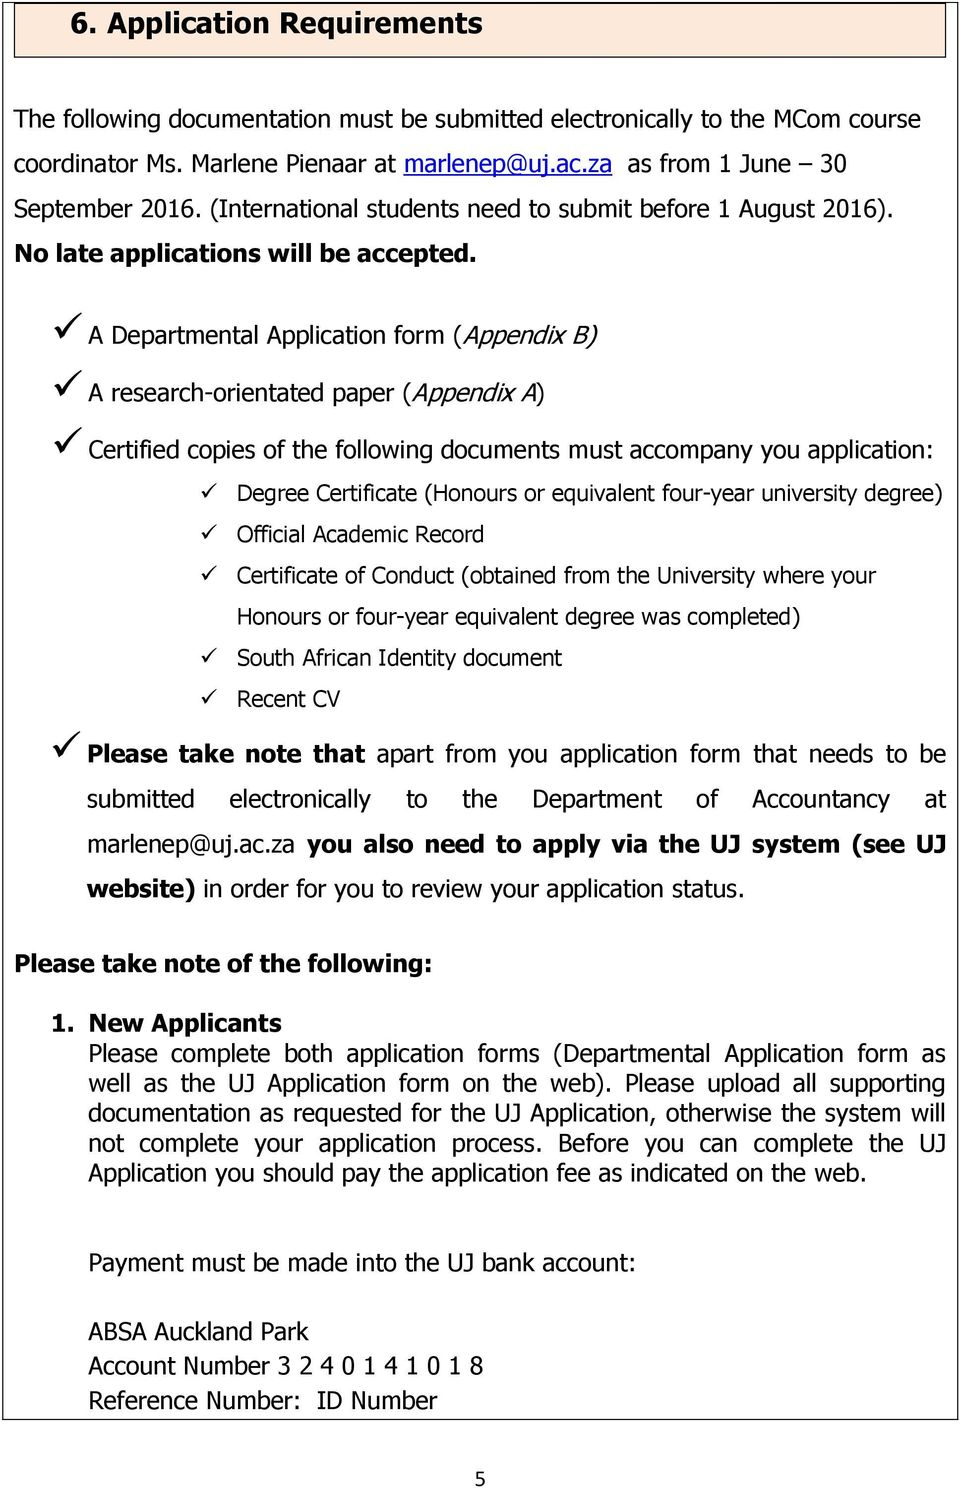 application for masters degree at uj